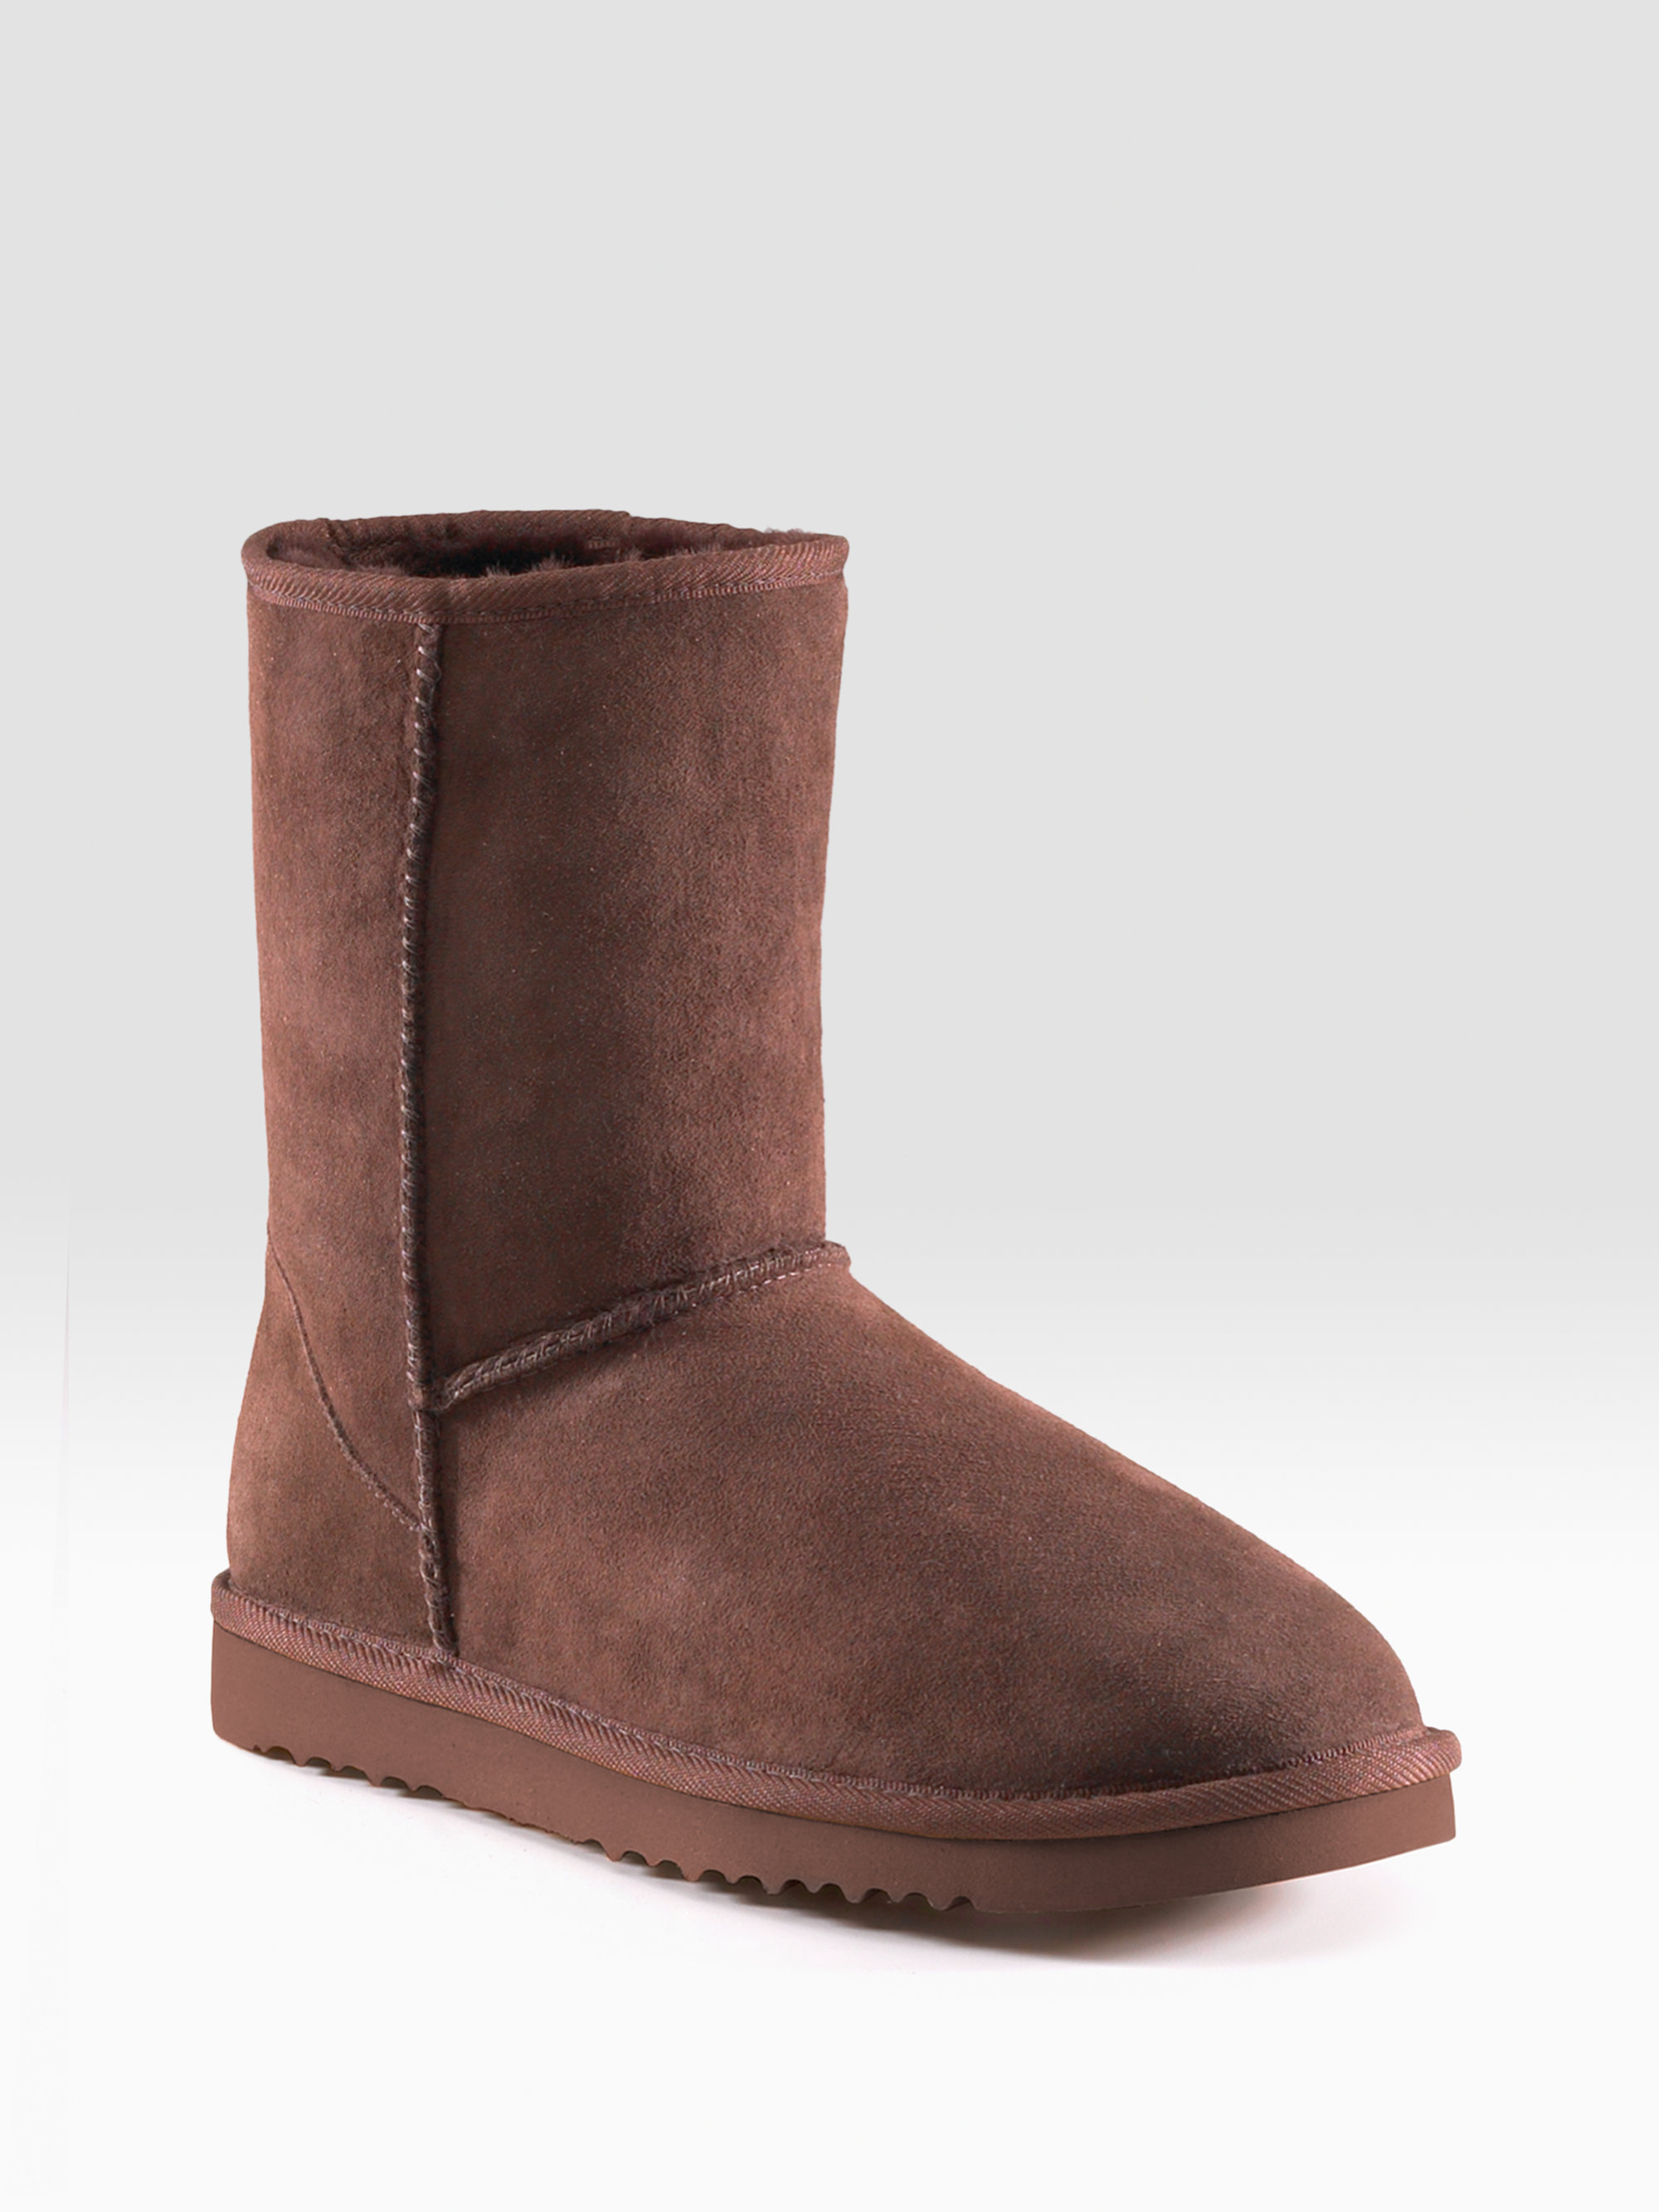 ugg classic short sheepskin boots in brown chocolate lyst. Black Bedroom Furniture Sets. Home Design Ideas